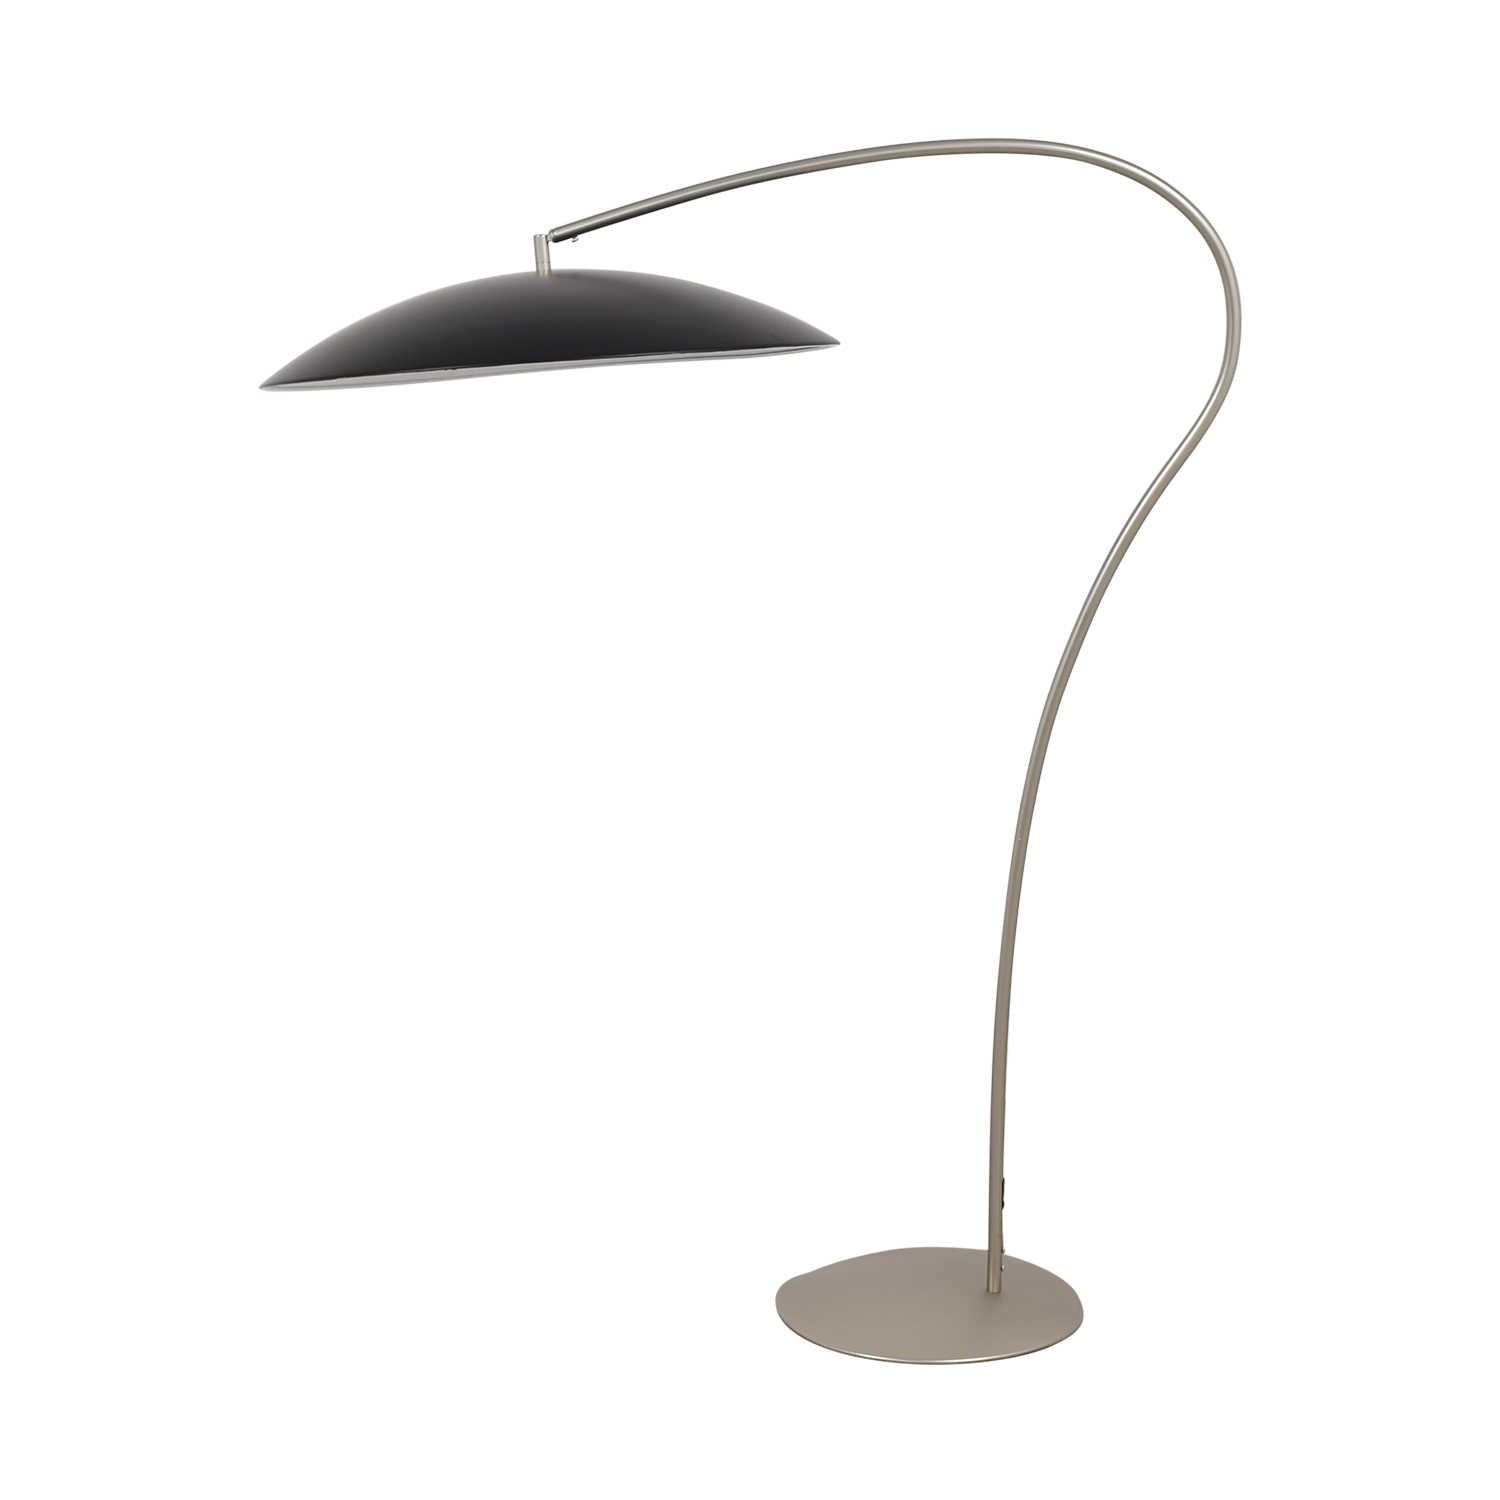 CB2 CB2 Atomic Arc Floor Lamp Decor